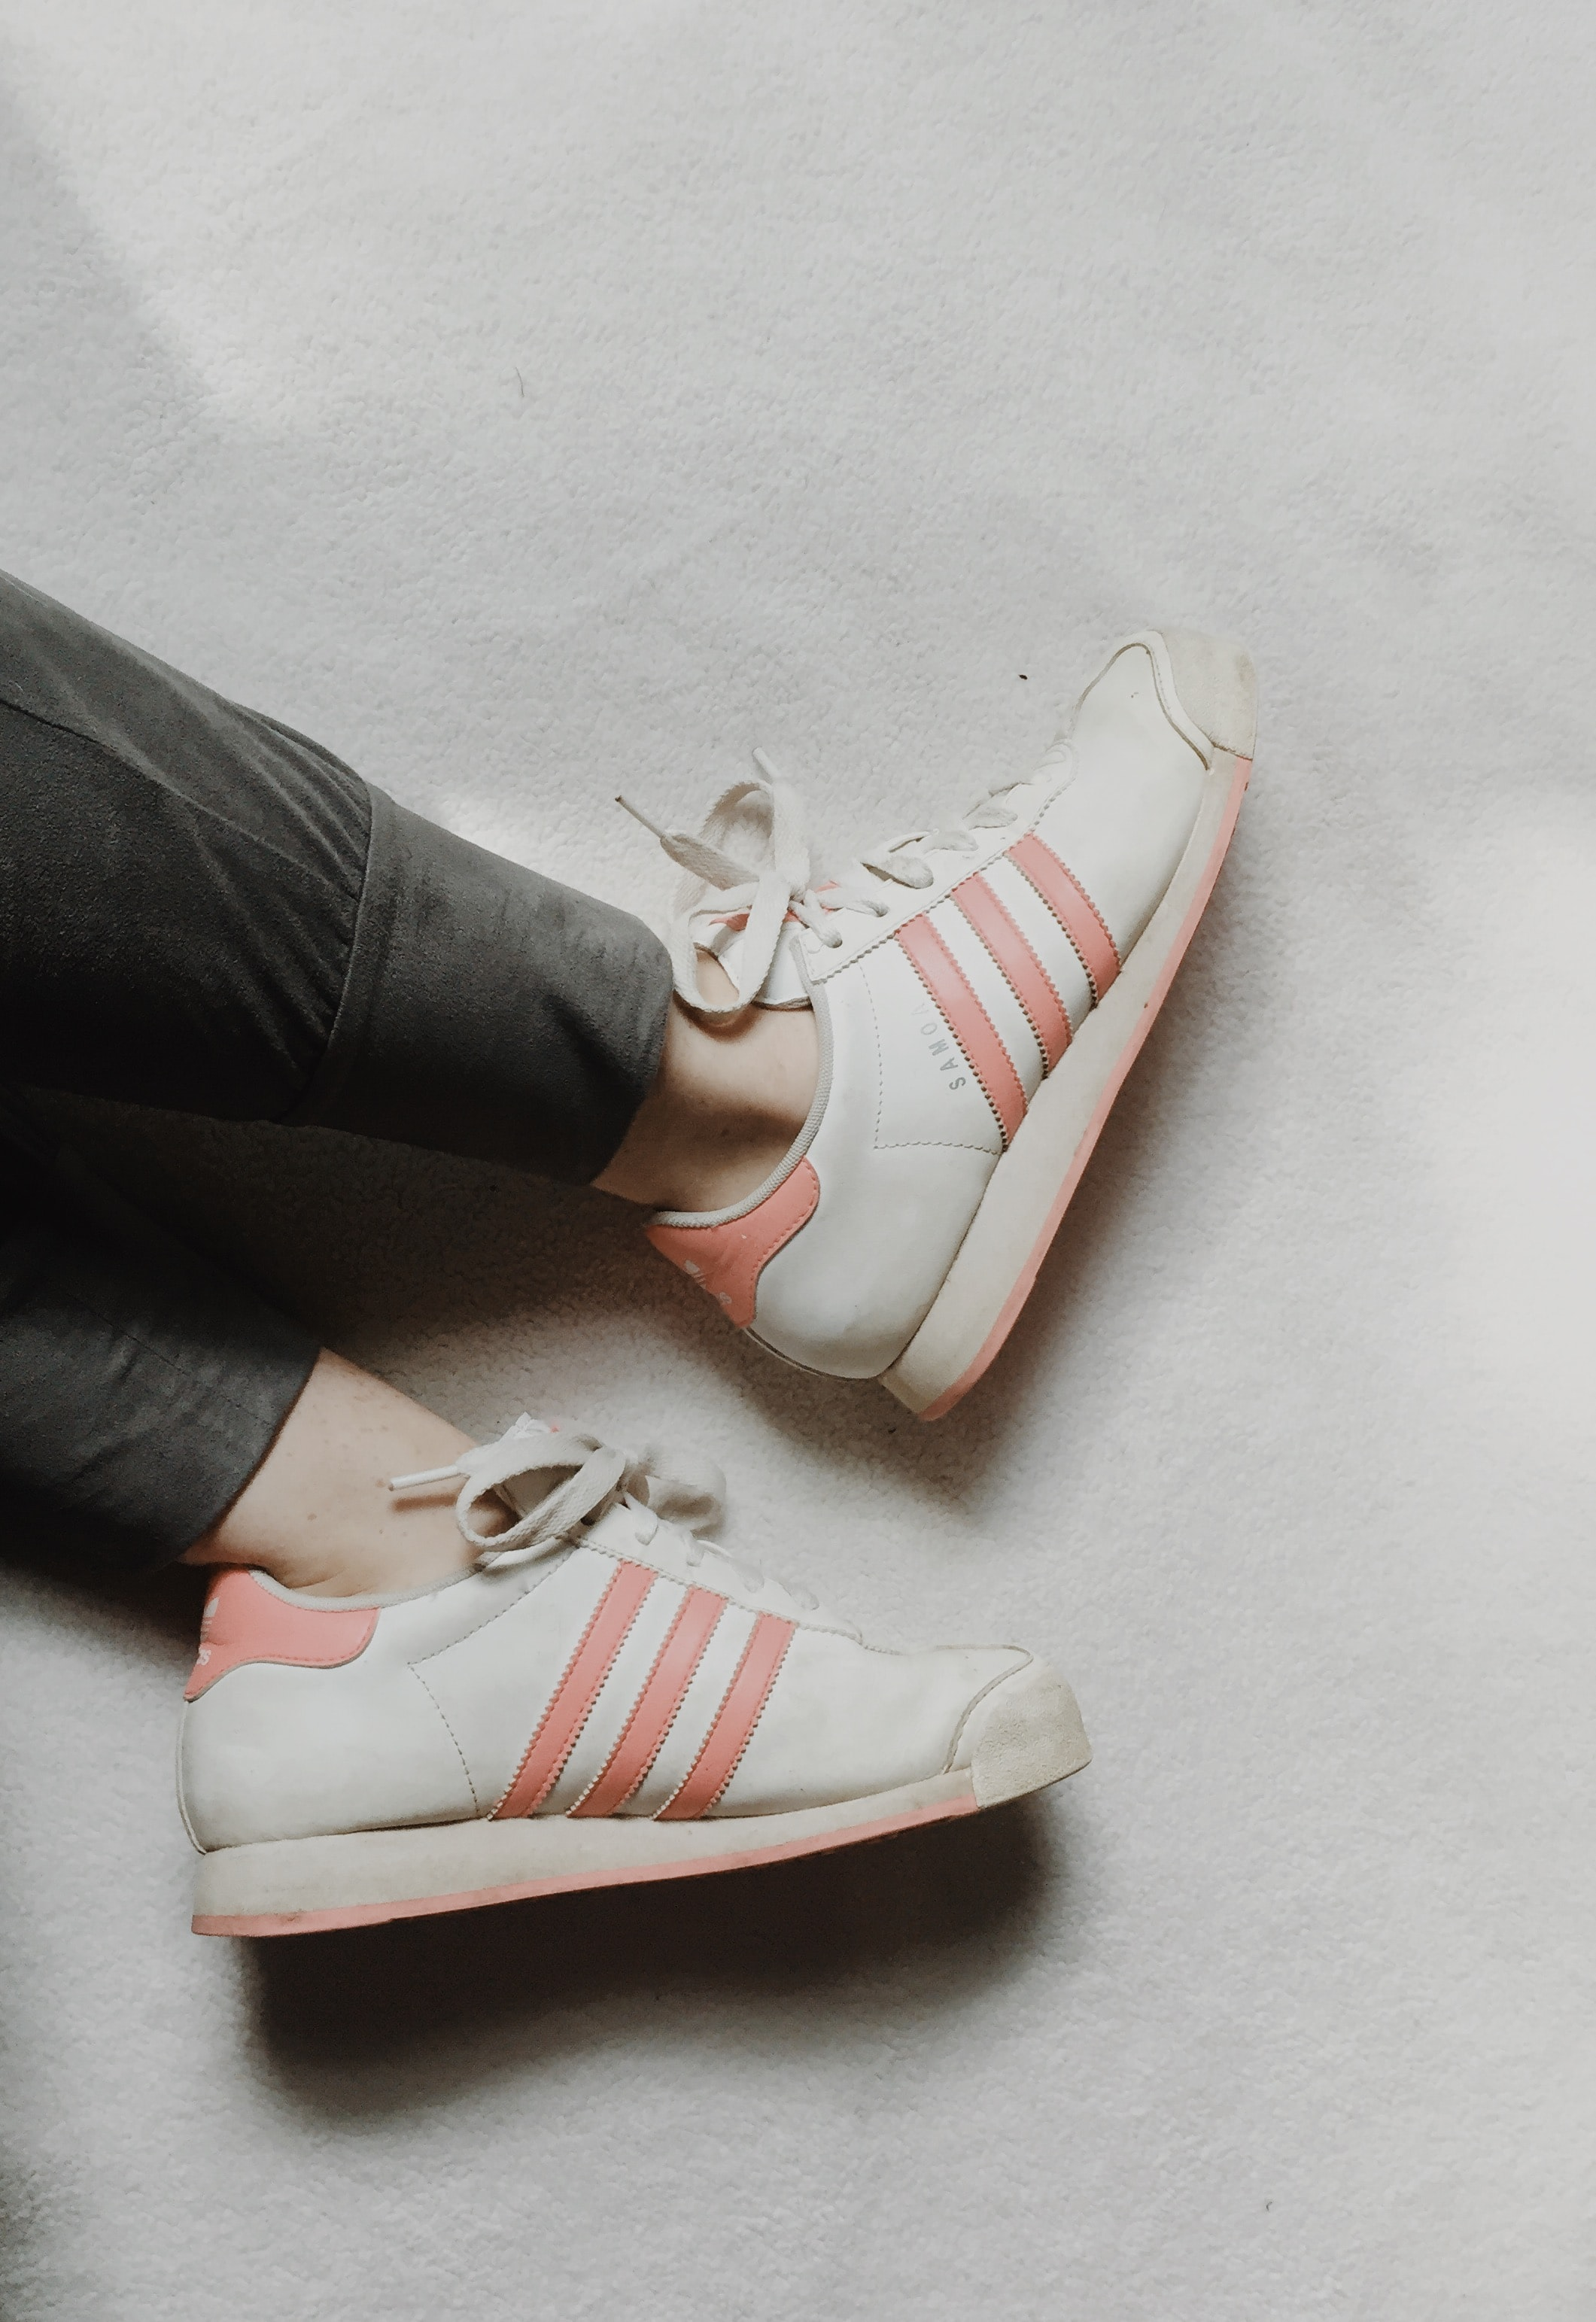 person taking photo of white-and-red adidas low-top sneakers